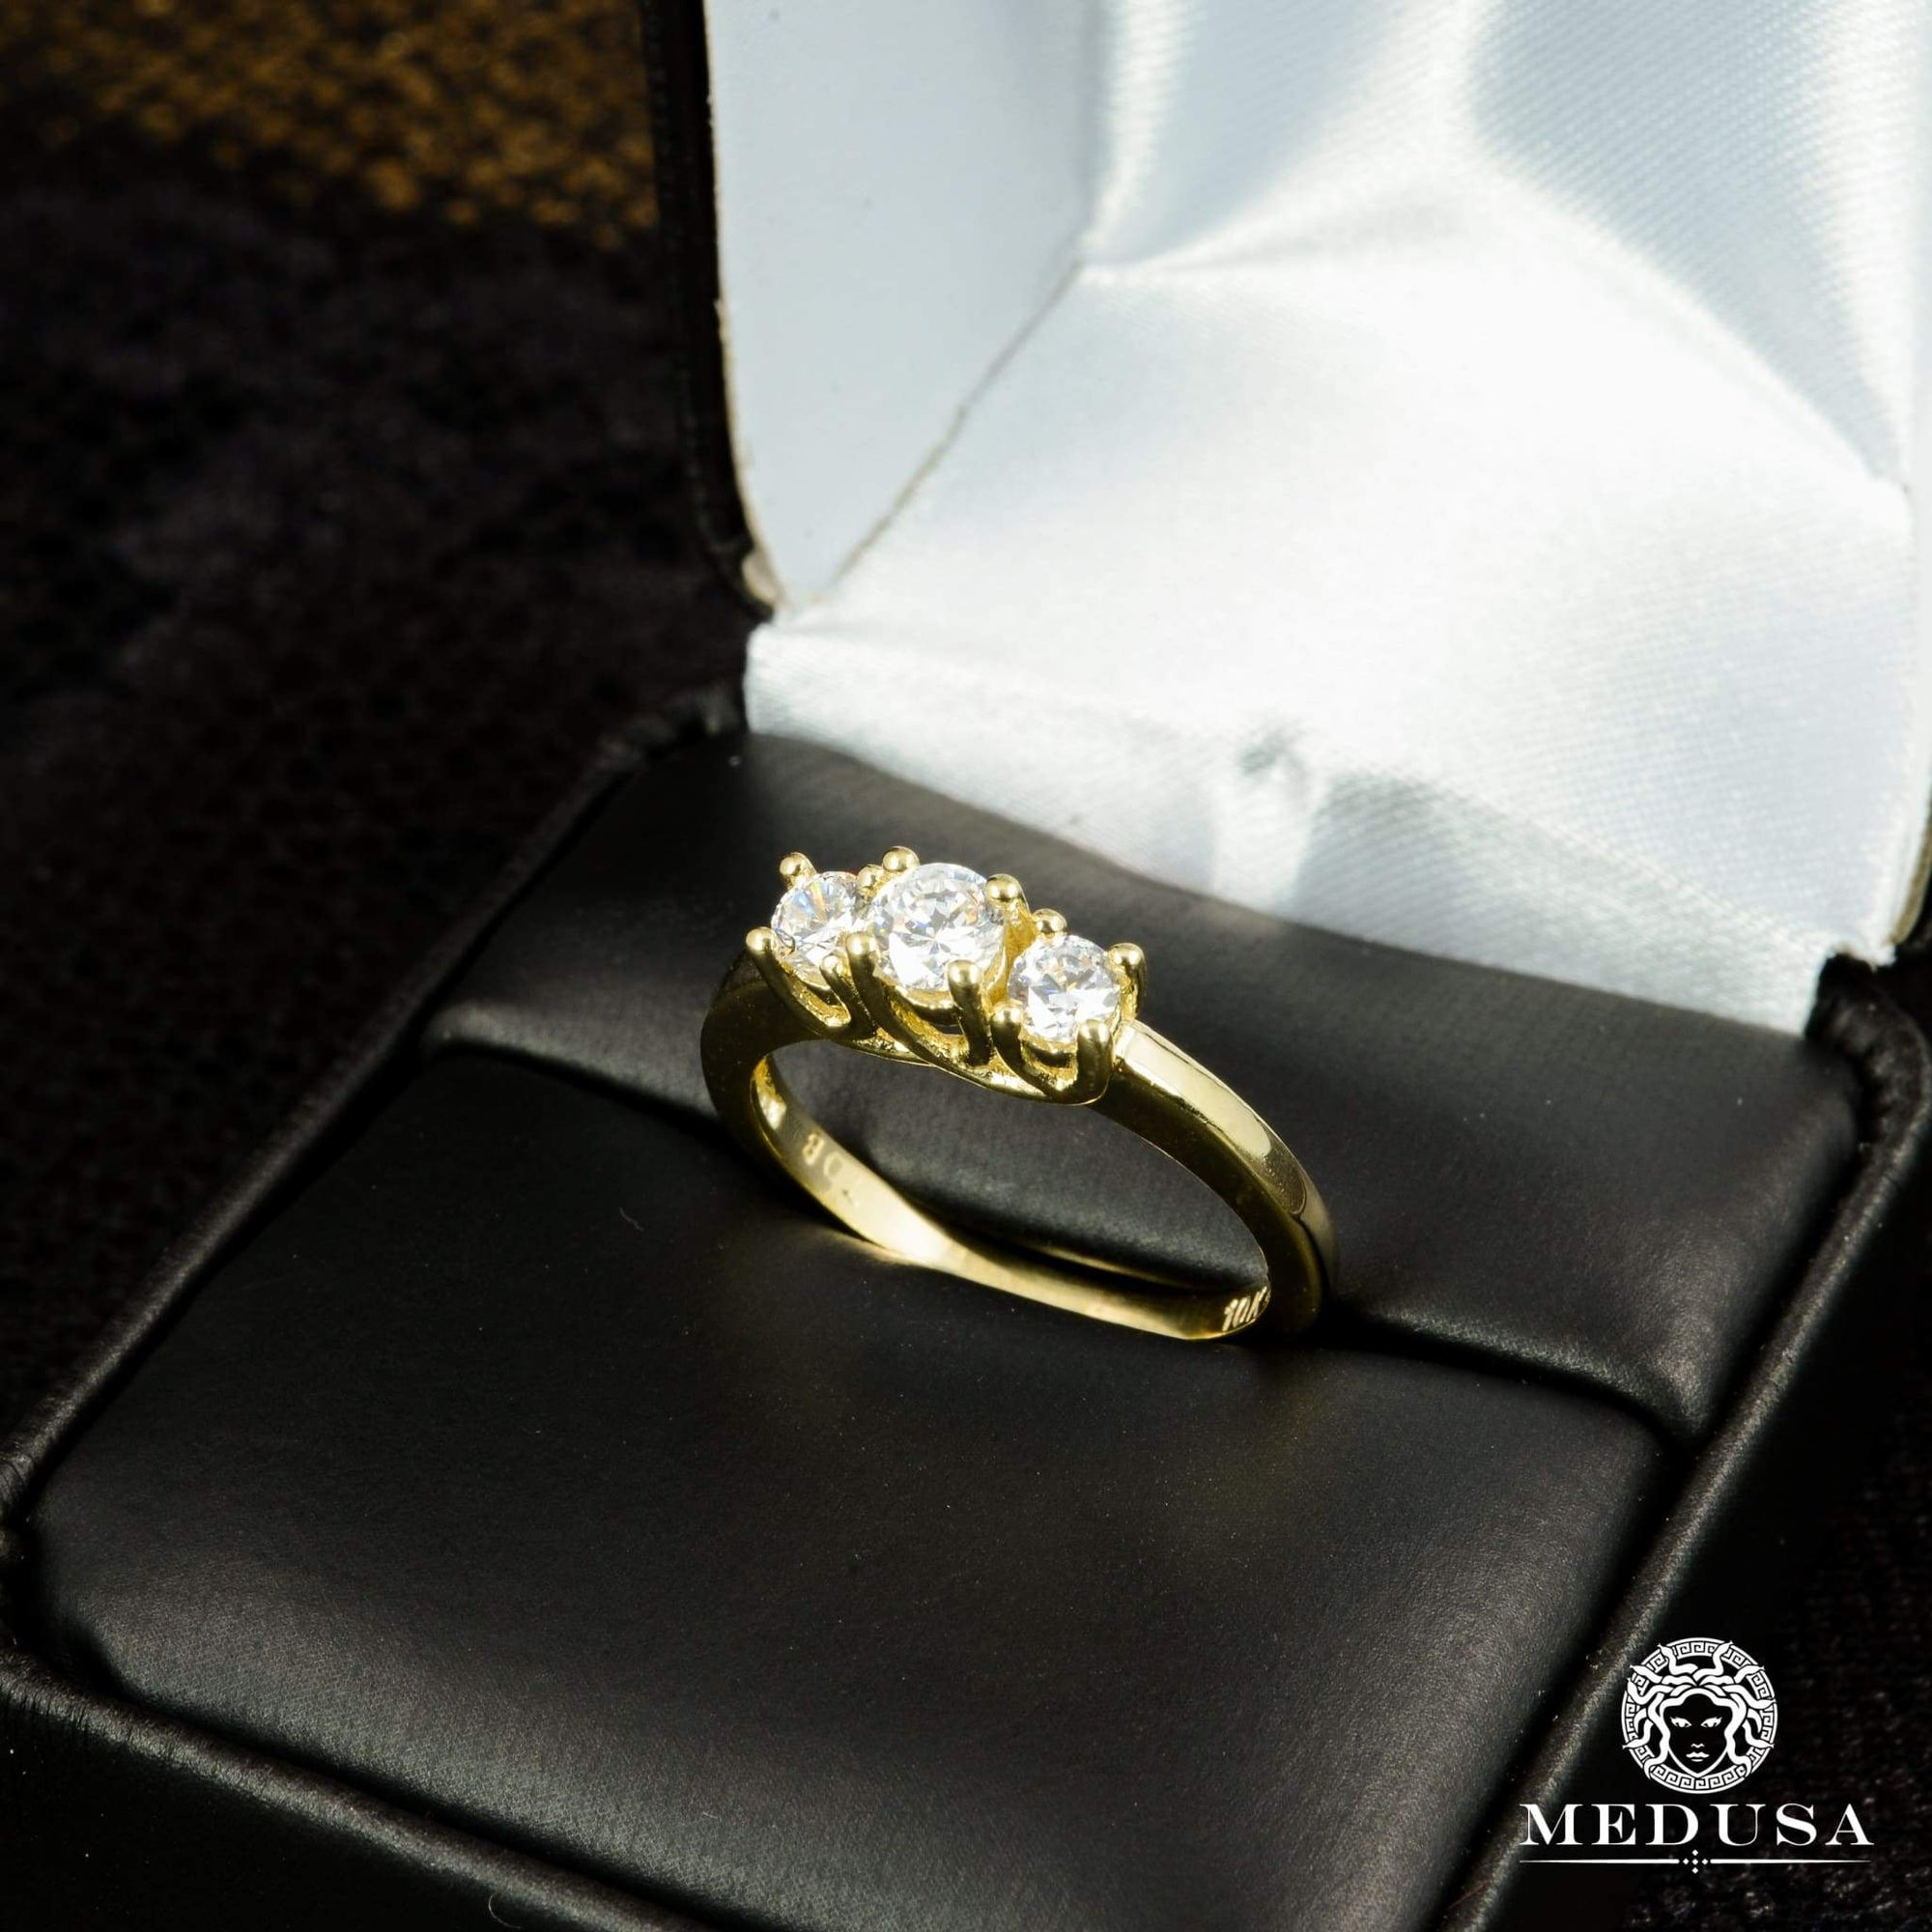 Bague à Diamants en Or 14K | Bague Fiançaille Trinity F9 - MA0696